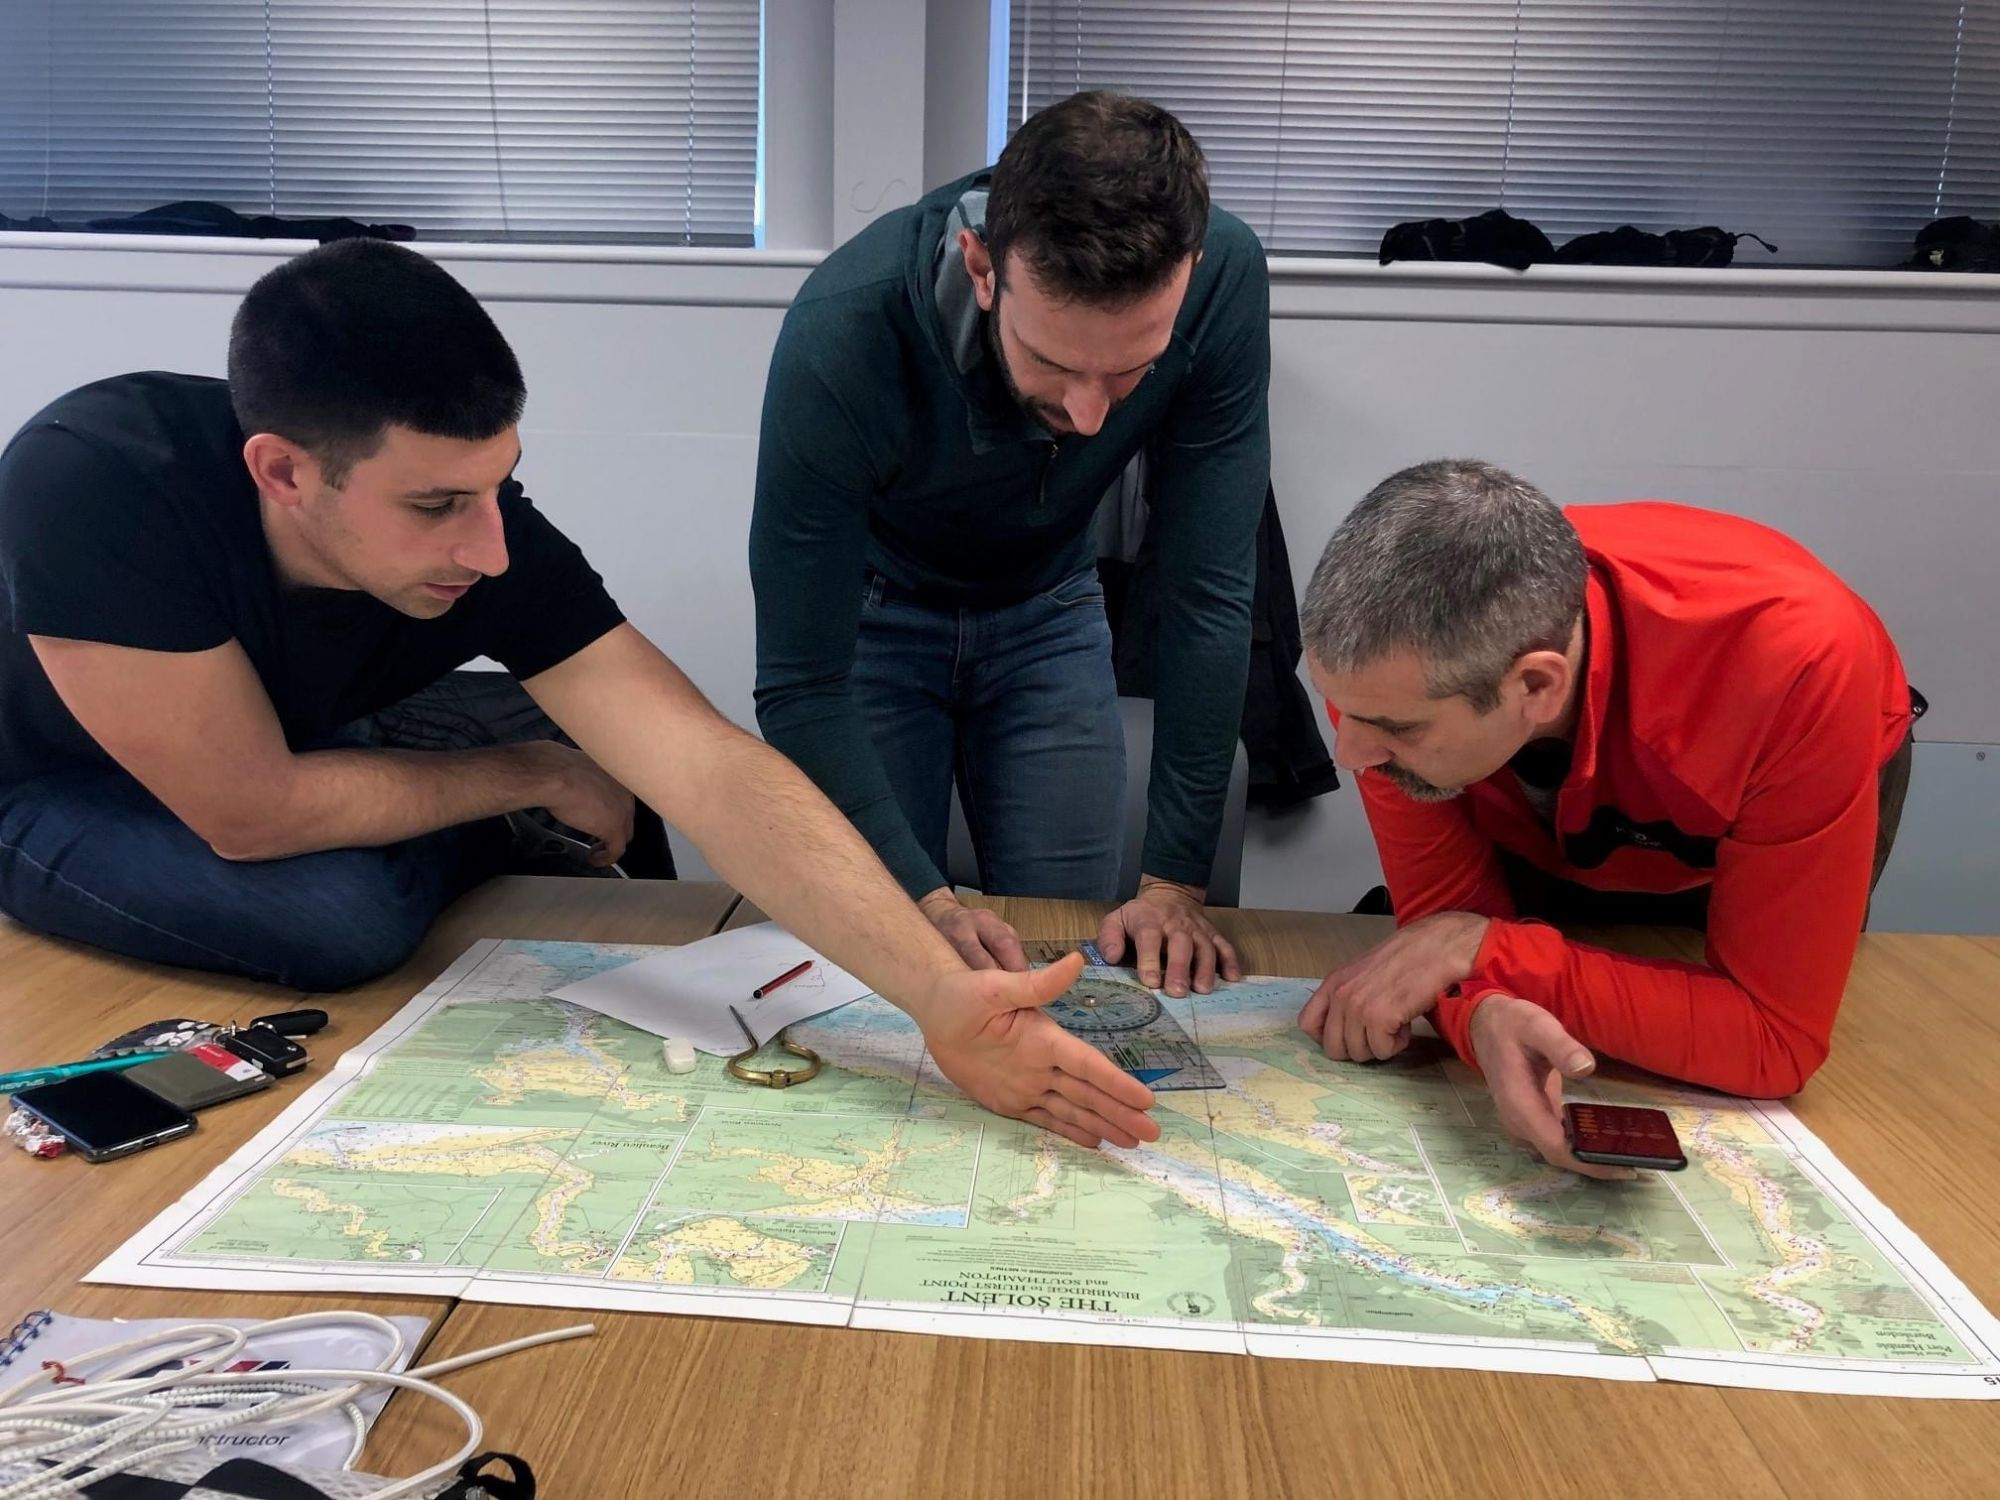 RYA Planning & Navigation Training